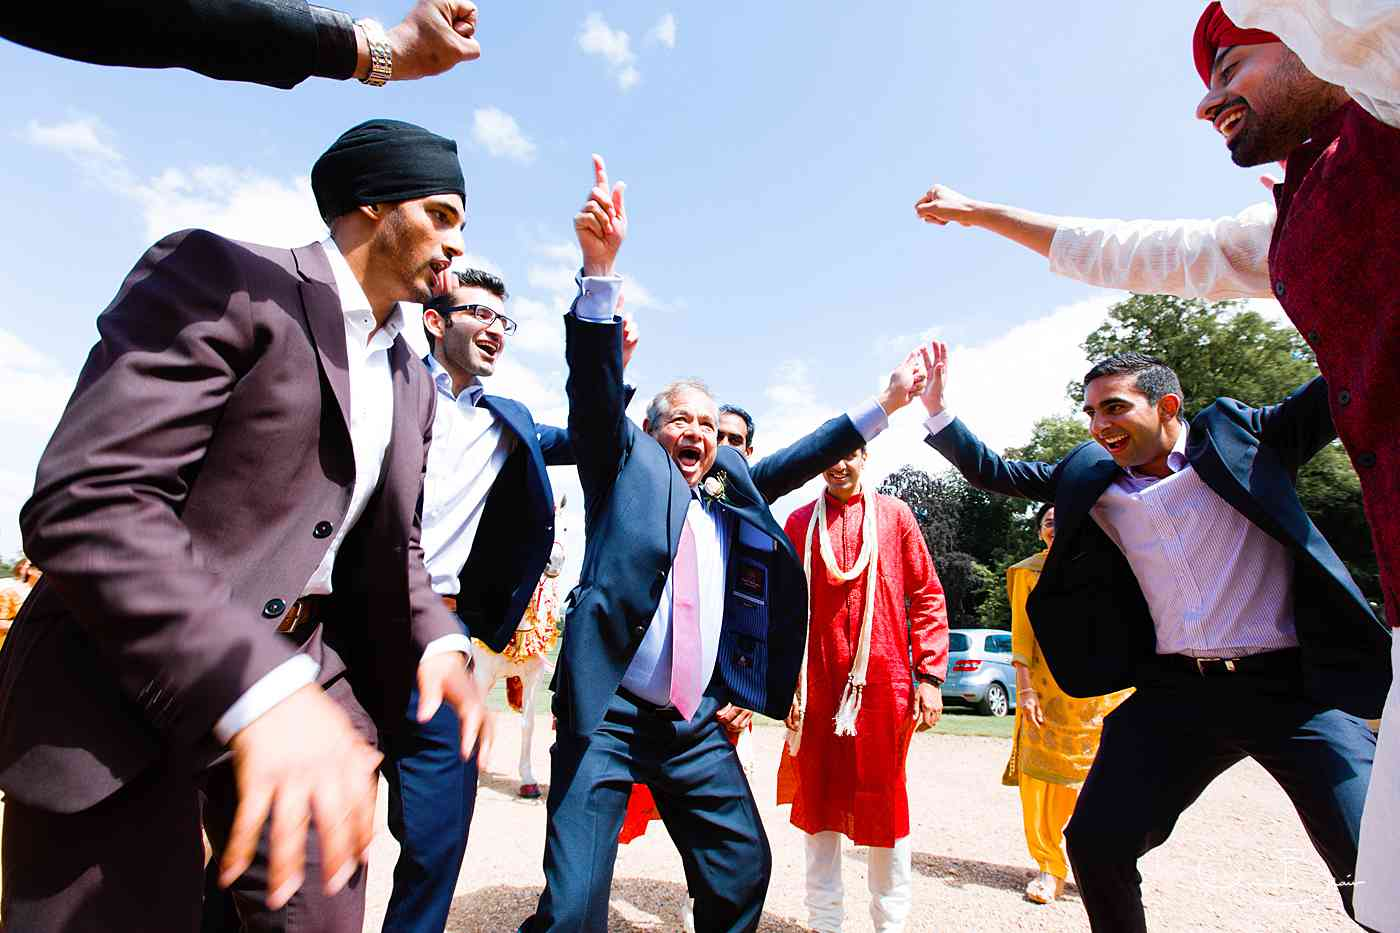 Indian guests dancing as groom arrives for wedding ceremony